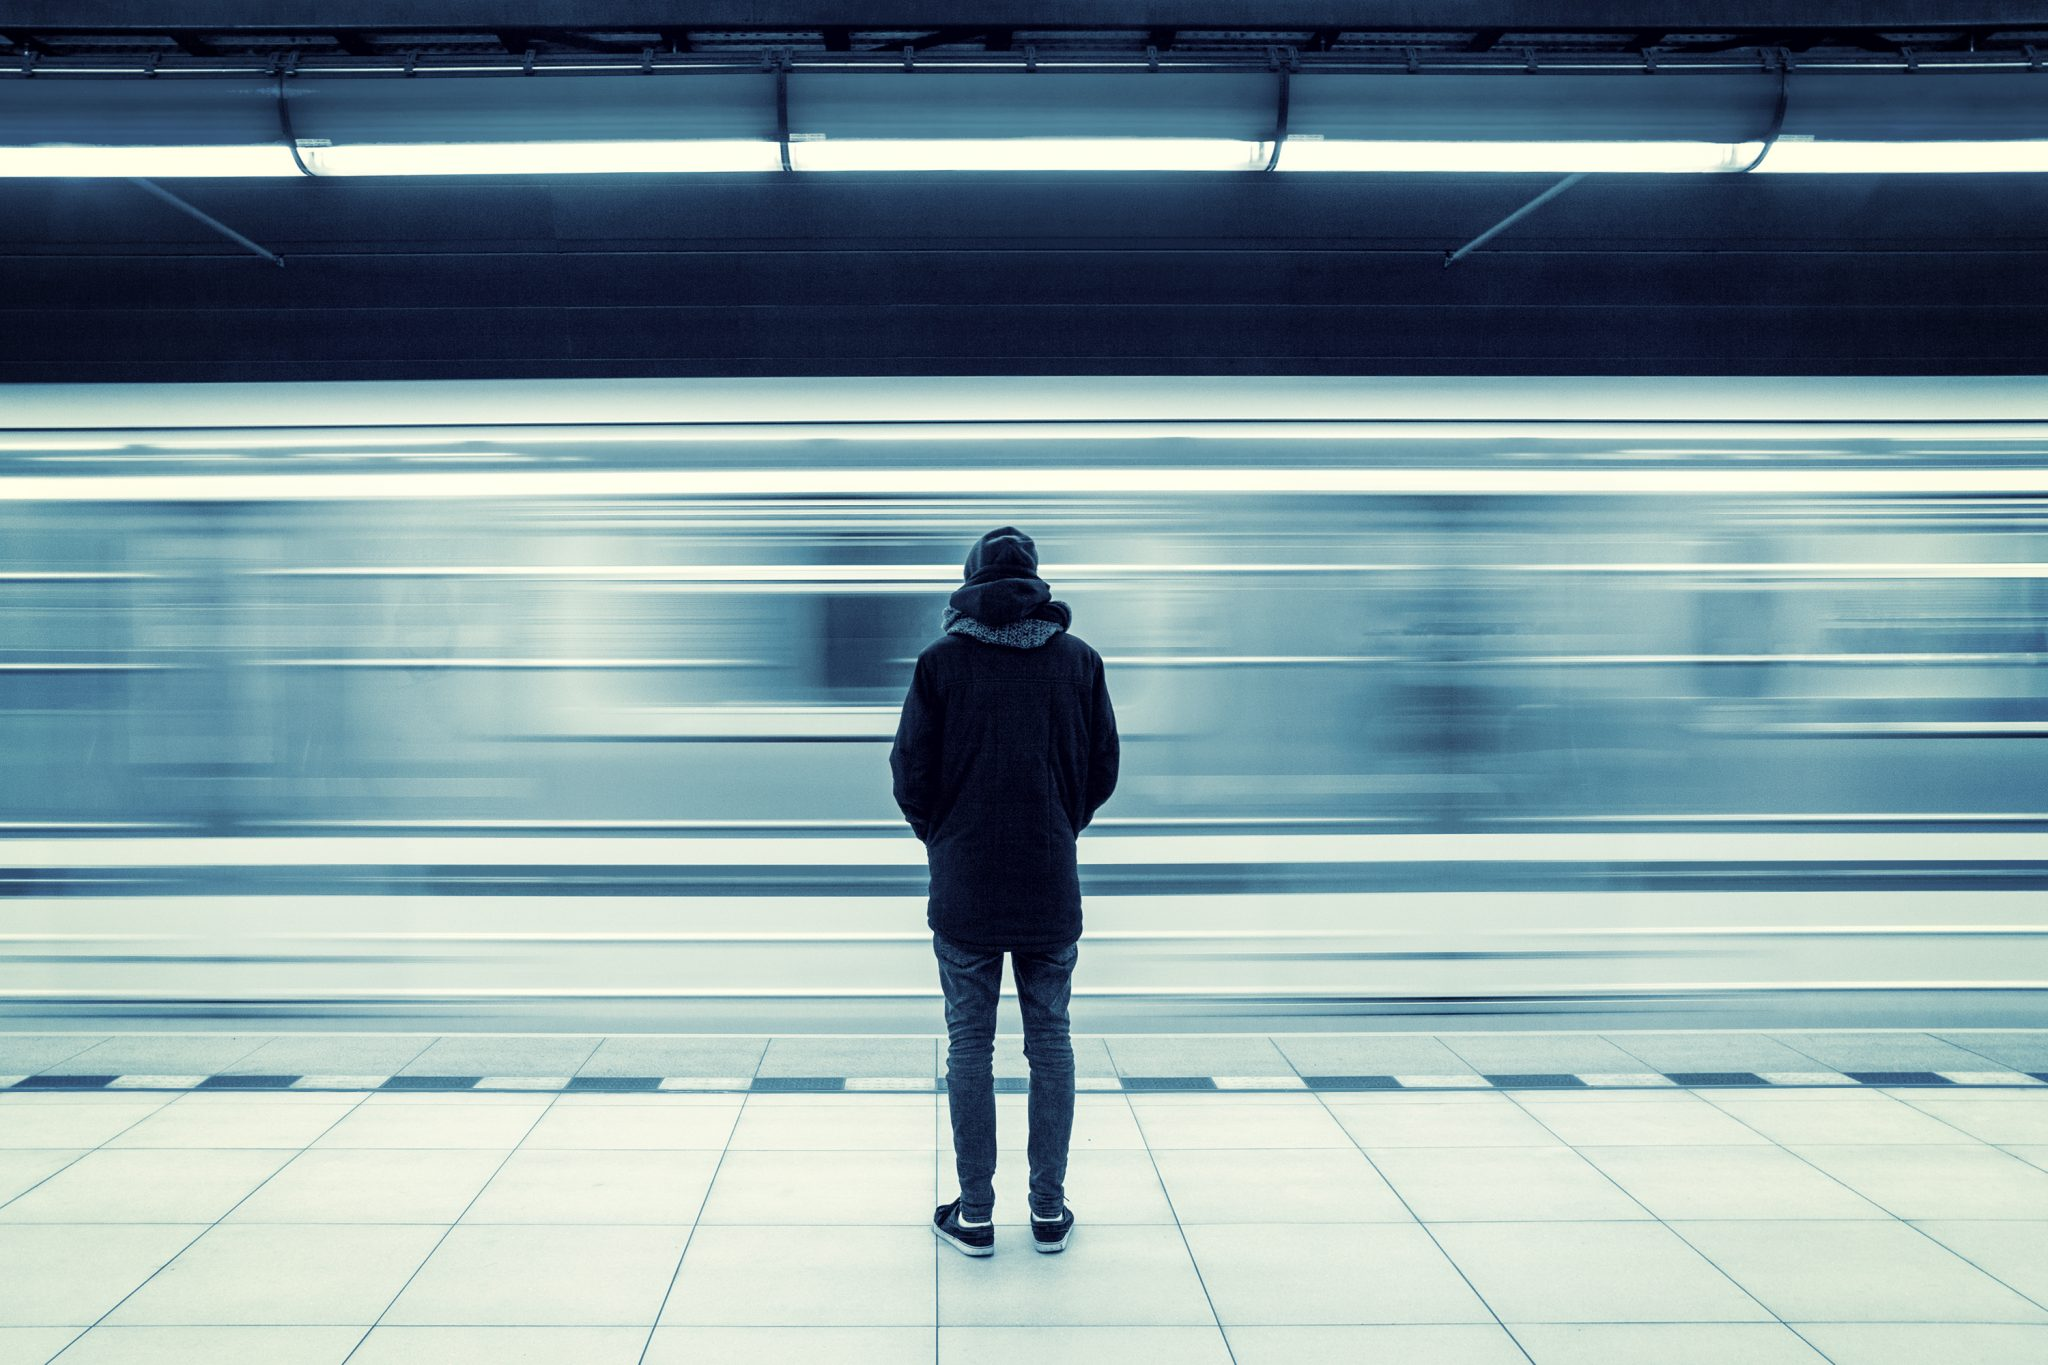 Man stuck in the typical American Dream, standing with his back to the camera in front of the blur of a subway whizzing by.